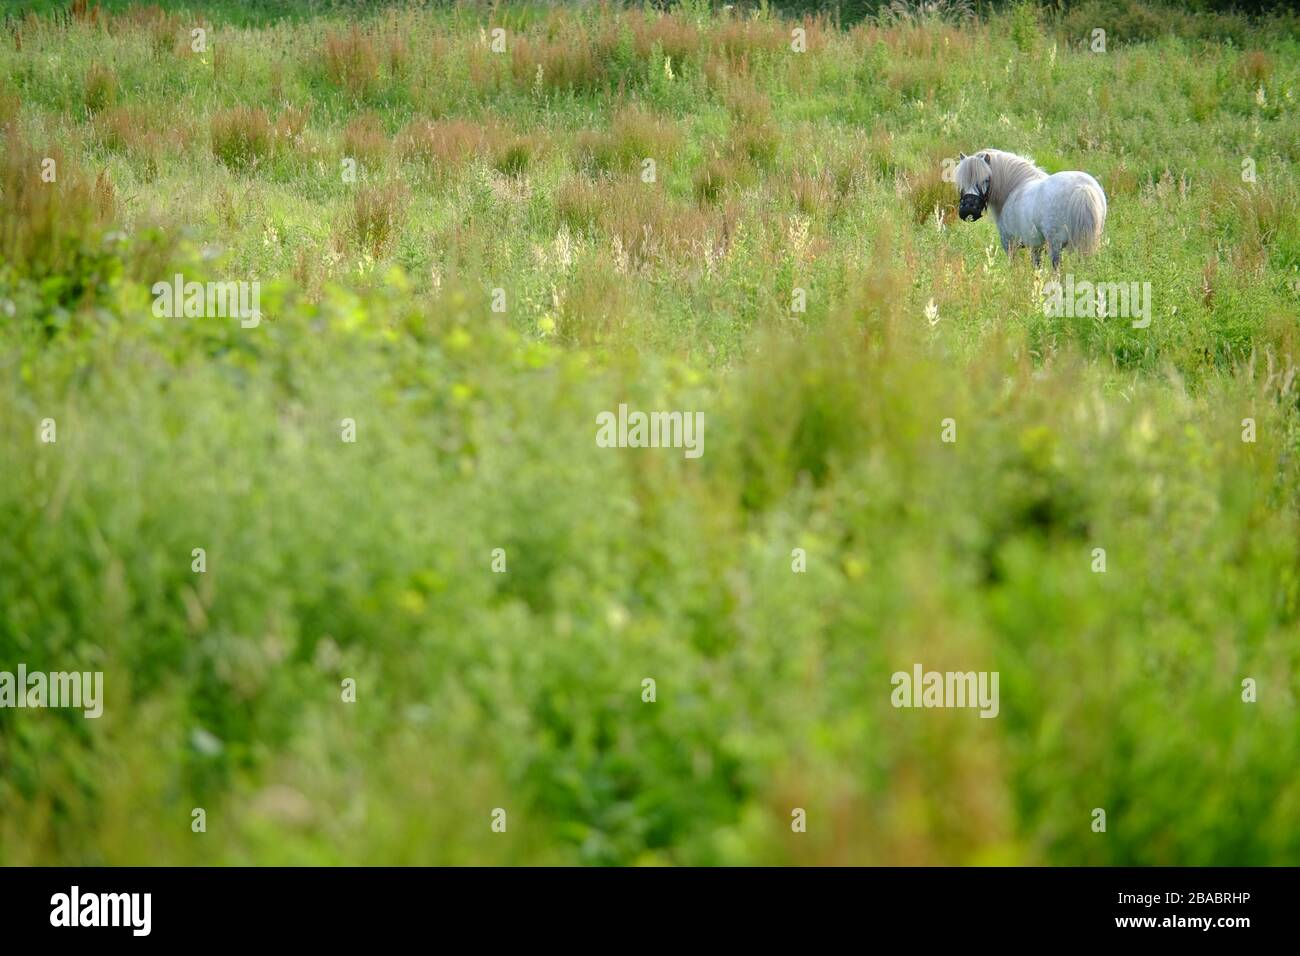 Small white pony in a meadow. Stock Photo